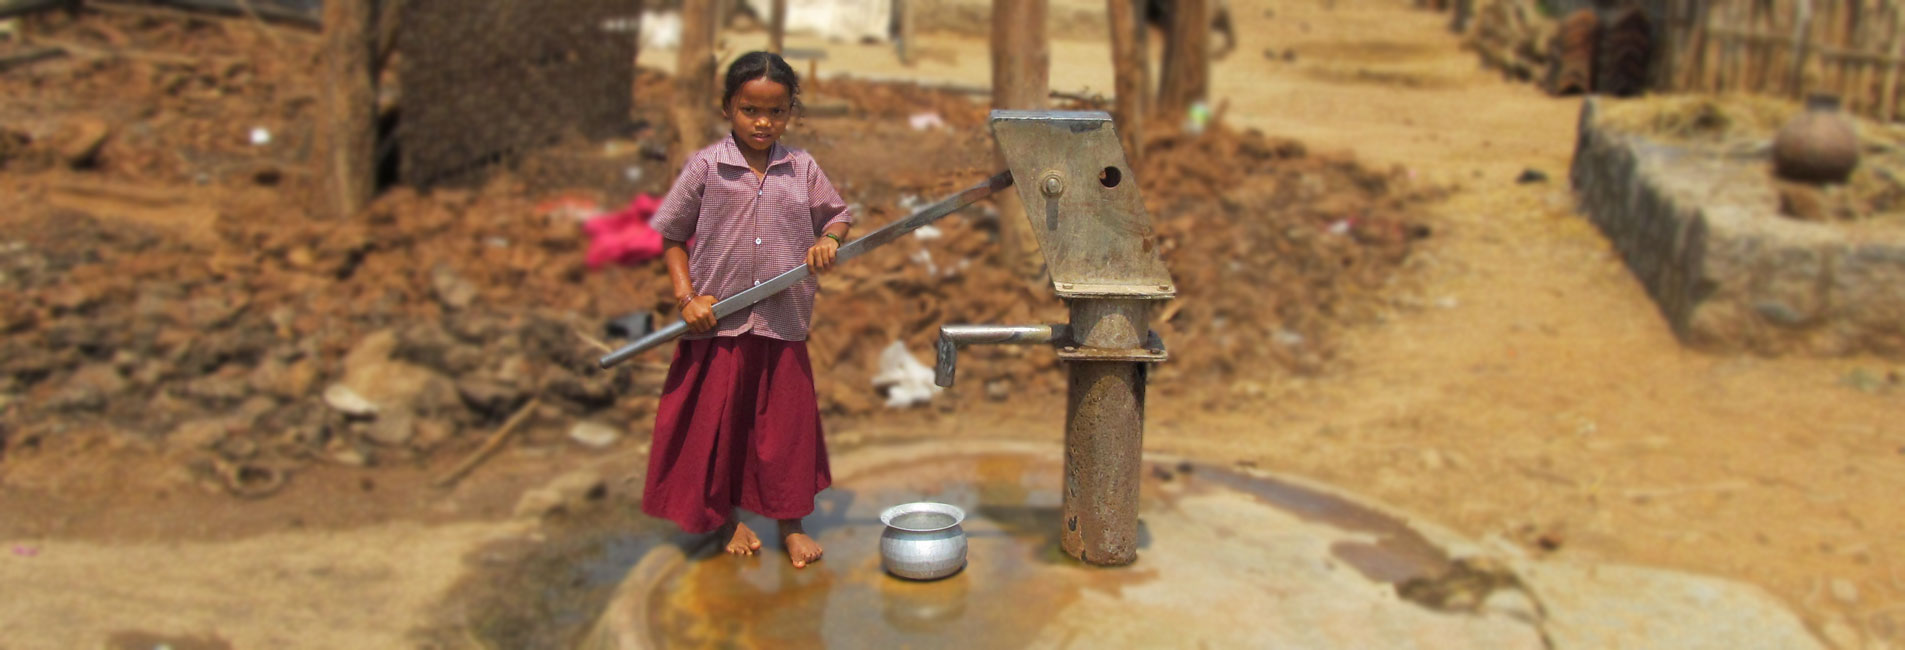 Drinking water For Remote Areas